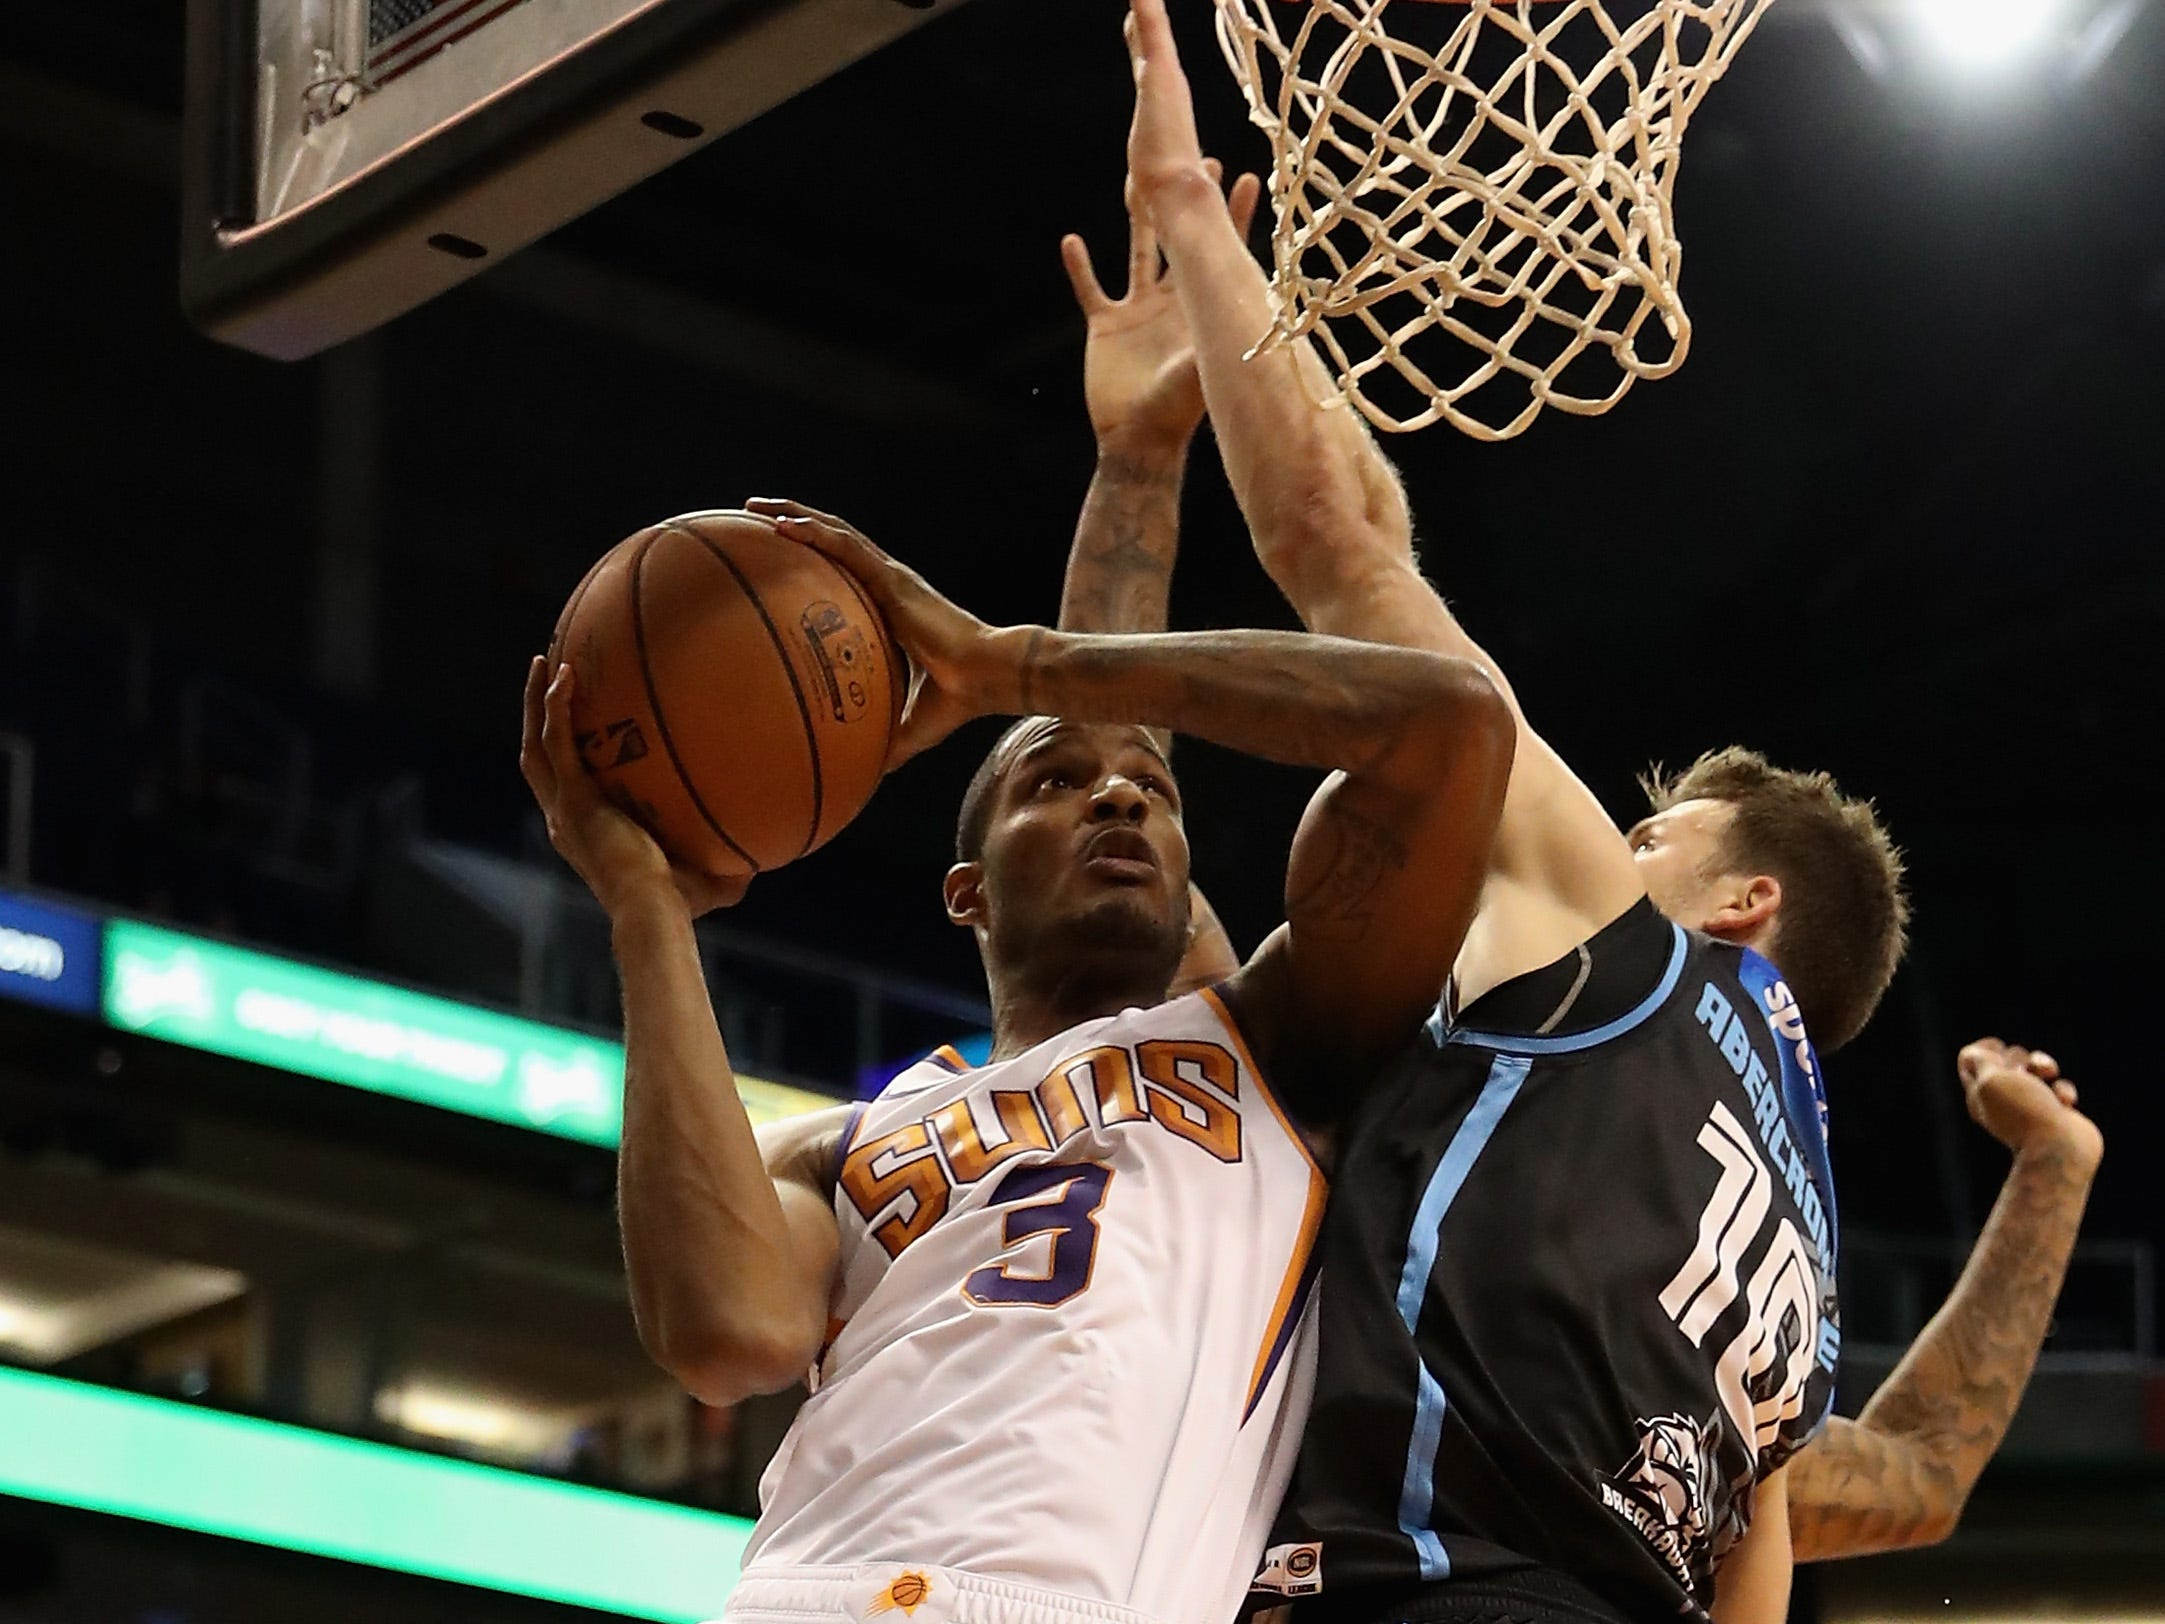 PHOENIX, AZ - OCTOBER 03:  Trevor Ariza #3 of the Phoenix Suns drives to the basket against against Thomas Abercromnbie #10 of the New Zealand Breakers during the first half of the NBA game at Talking Stick Resort Arena on October 3, 2018 in Phoenix, Arizona.  NOTE TO USER: User expressly acknowledges and agrees that, by downloading and or using this photograph, User is consenting to the terms and conditions of the Getty Images License Agreement.  (Photo by Christian Petersen/Getty Images)